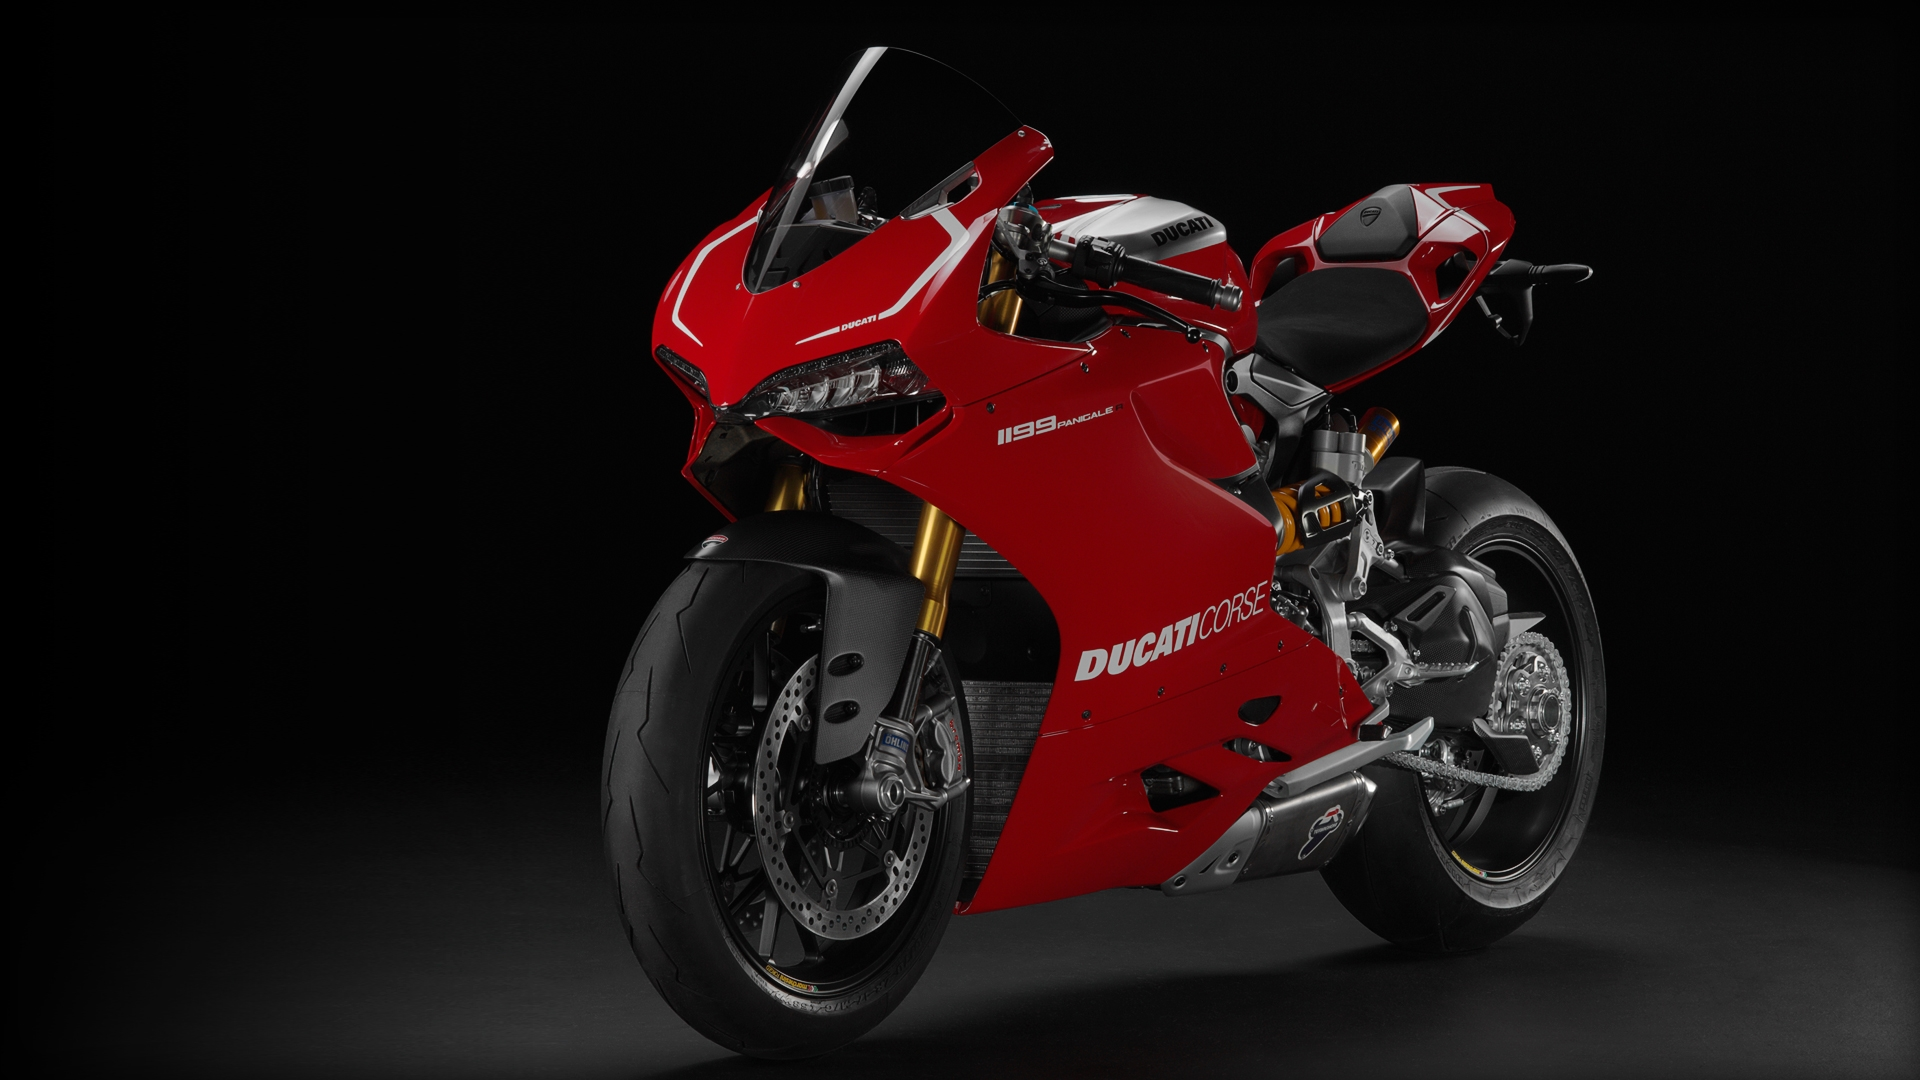 2013 ducati superbike 1199 panigale r pictures, photos, wallpapers